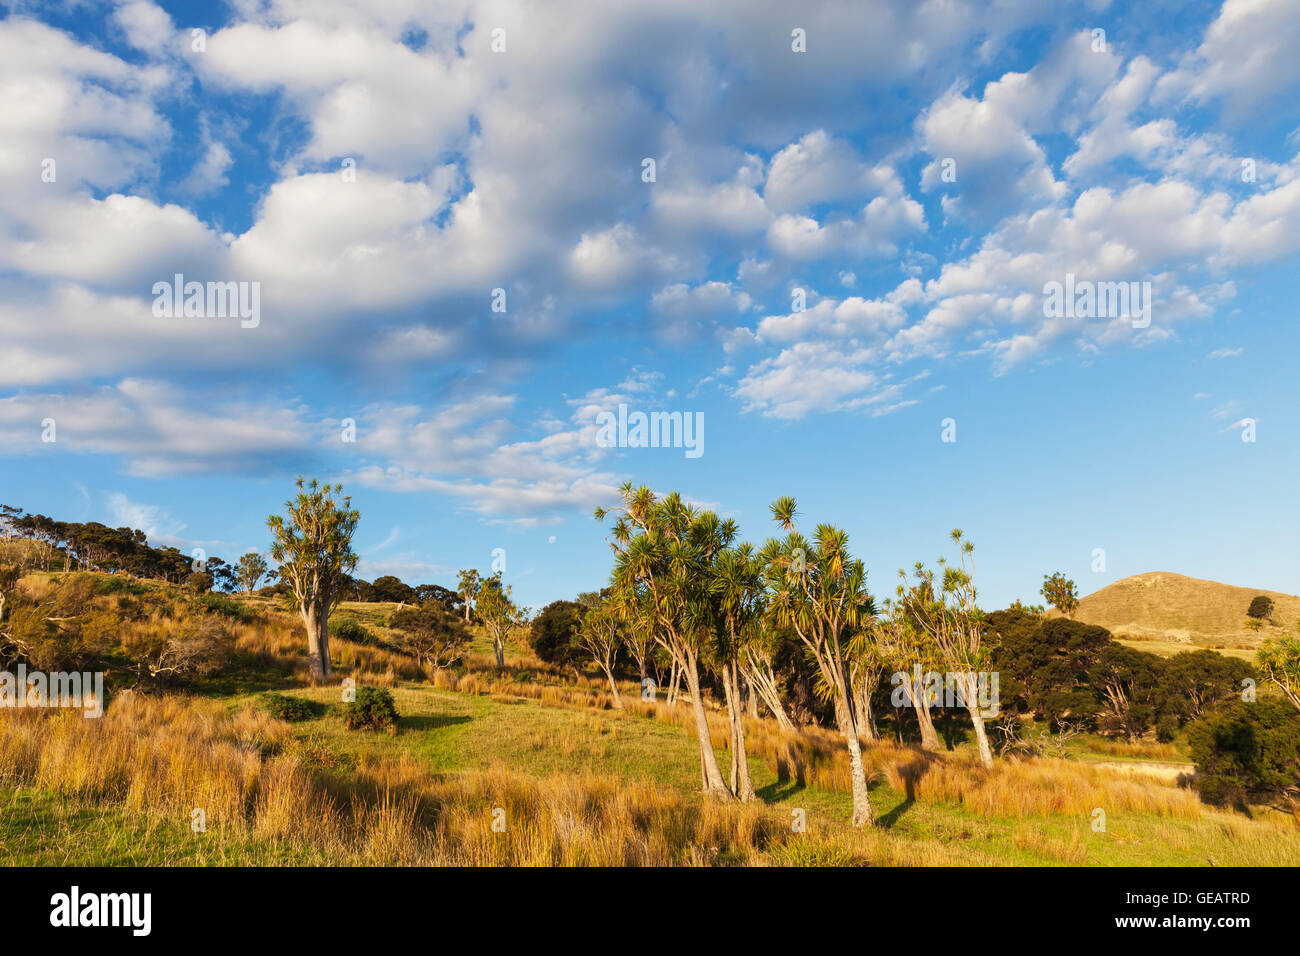 New Zealand, North Island, East Cape, Tolaga Bay region, evening light and cabbage trees, Cordyline australis - Stock Image